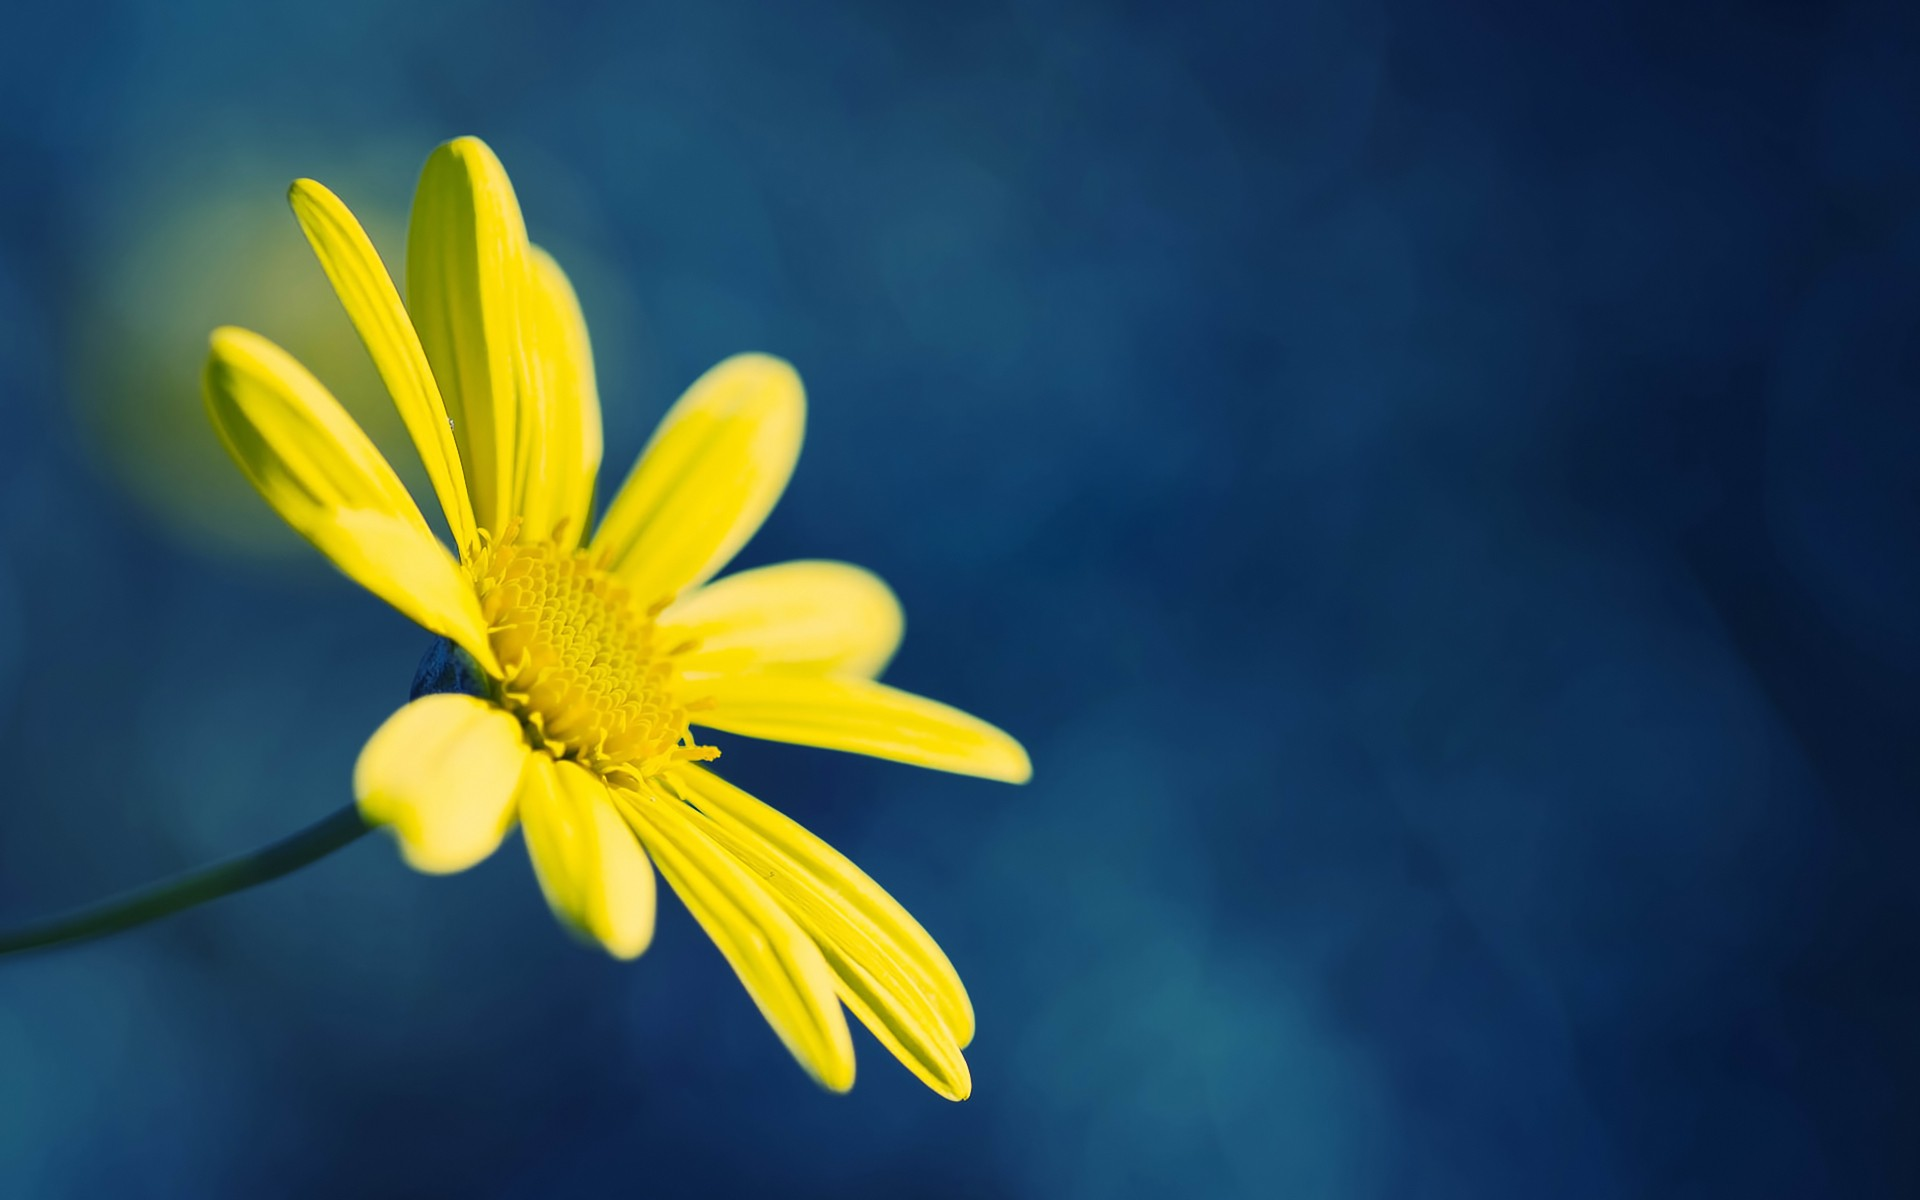 Yellow flower on blue background wallpapers yellow flower on blue image yellow flower on blue background wallpapers and stock photos mightylinksfo